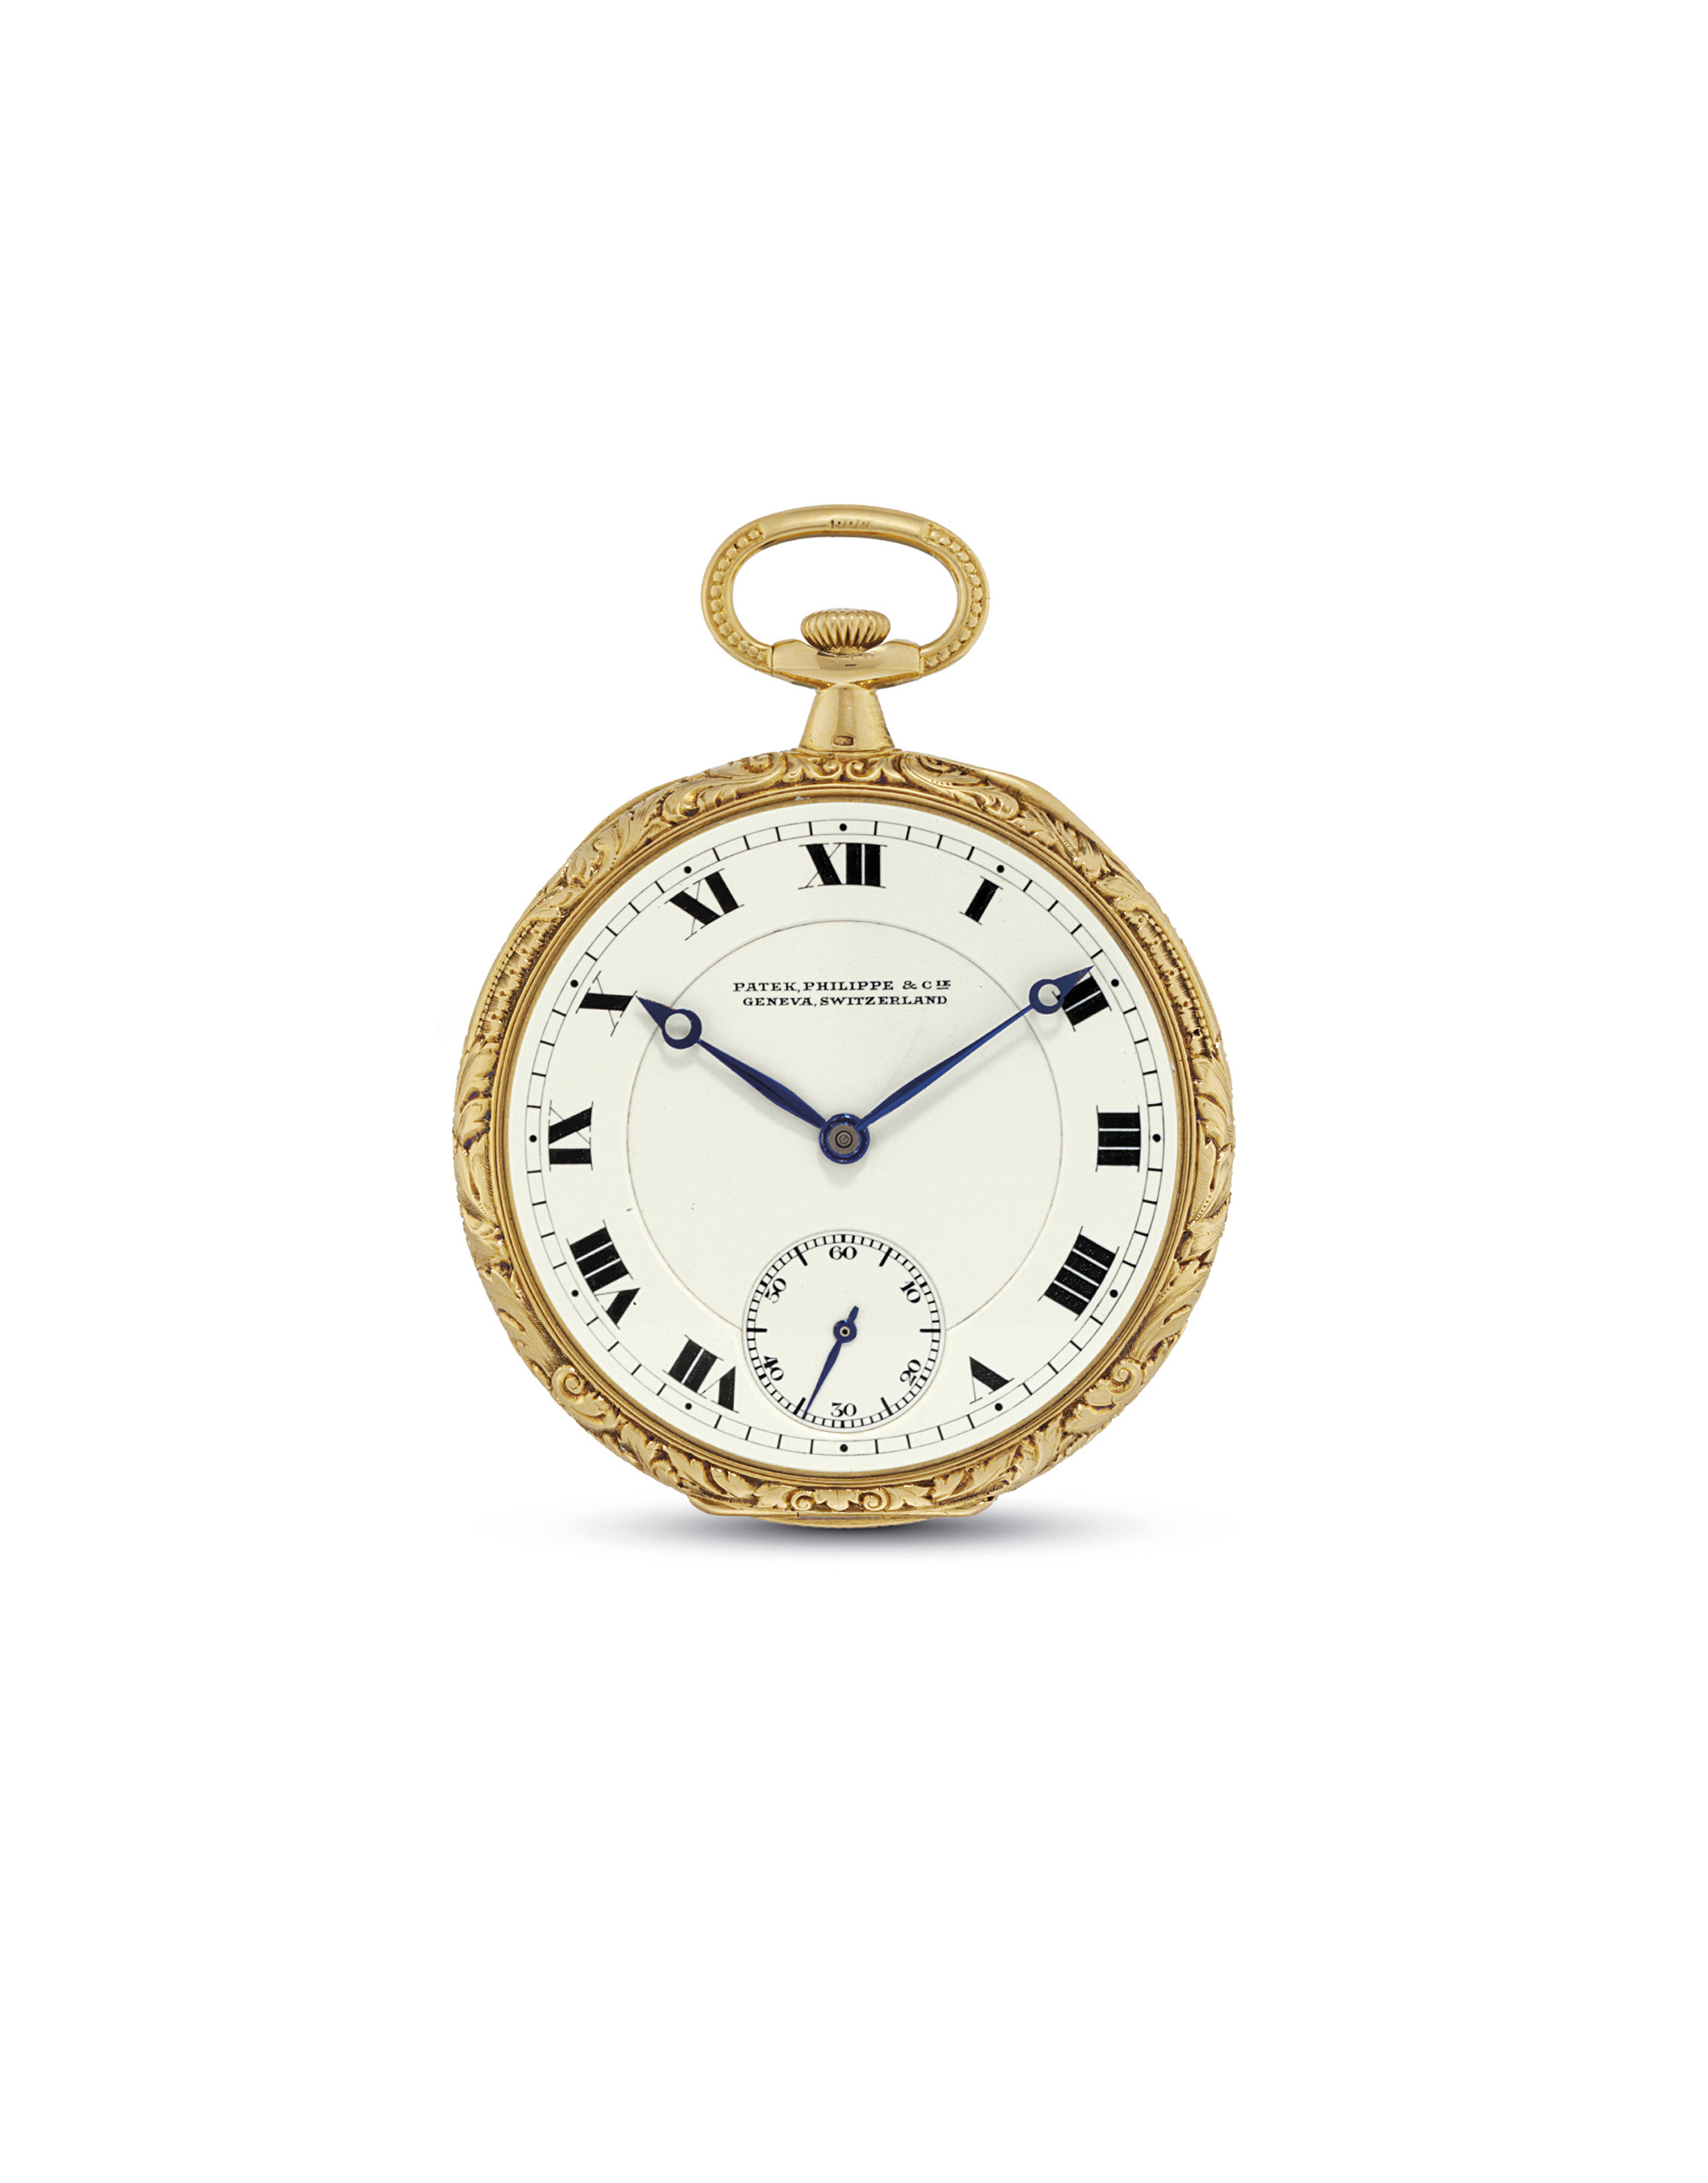 PATEK PHILIPPE. A FINE 18K GOLD OPENFACE KEYLESS LEVER WATCH